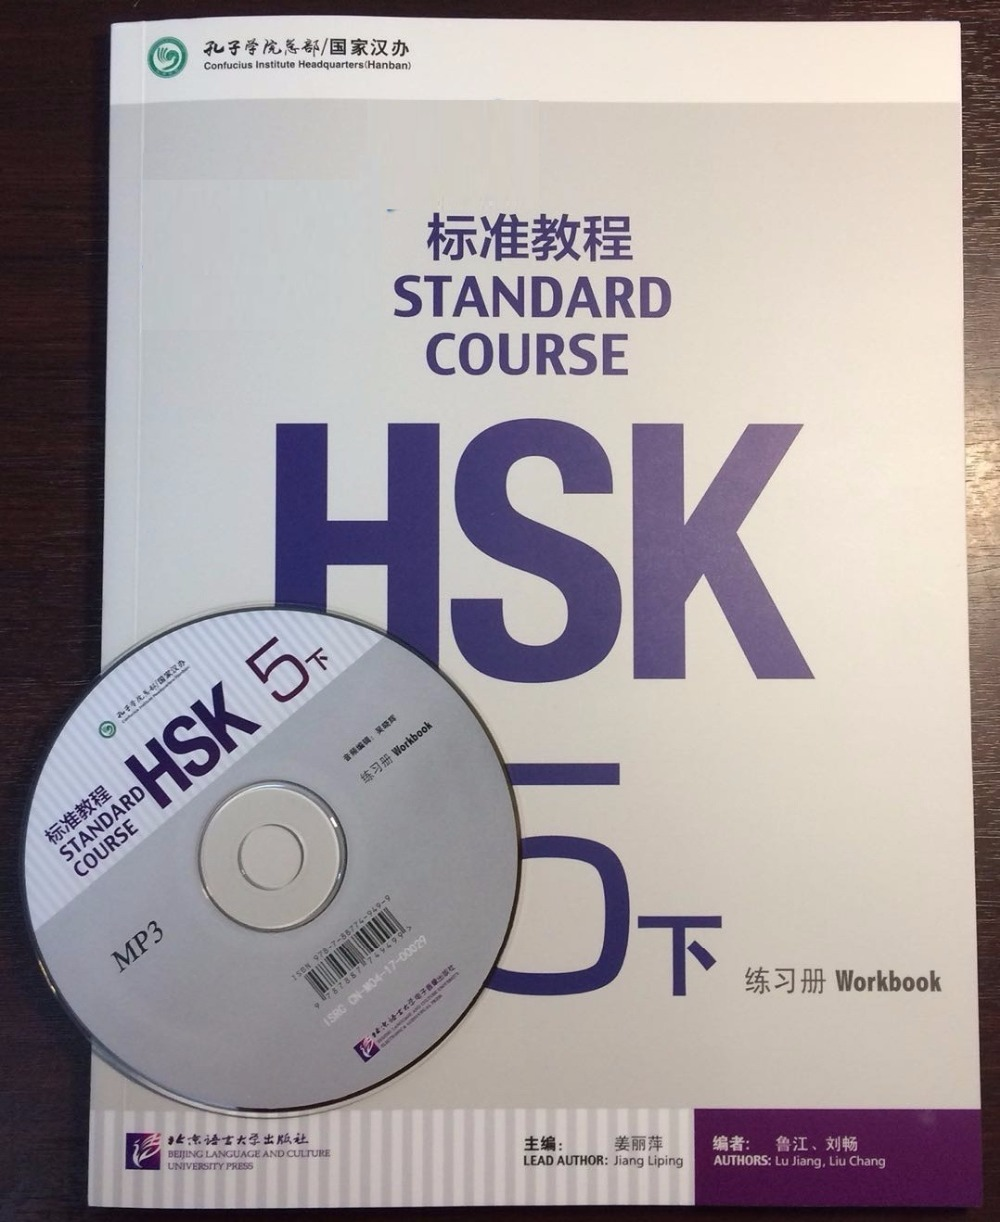 Chinese English exercise book HSK students workbook :Standard Course HSK 5B (with CD) резиновые сапоги barbie